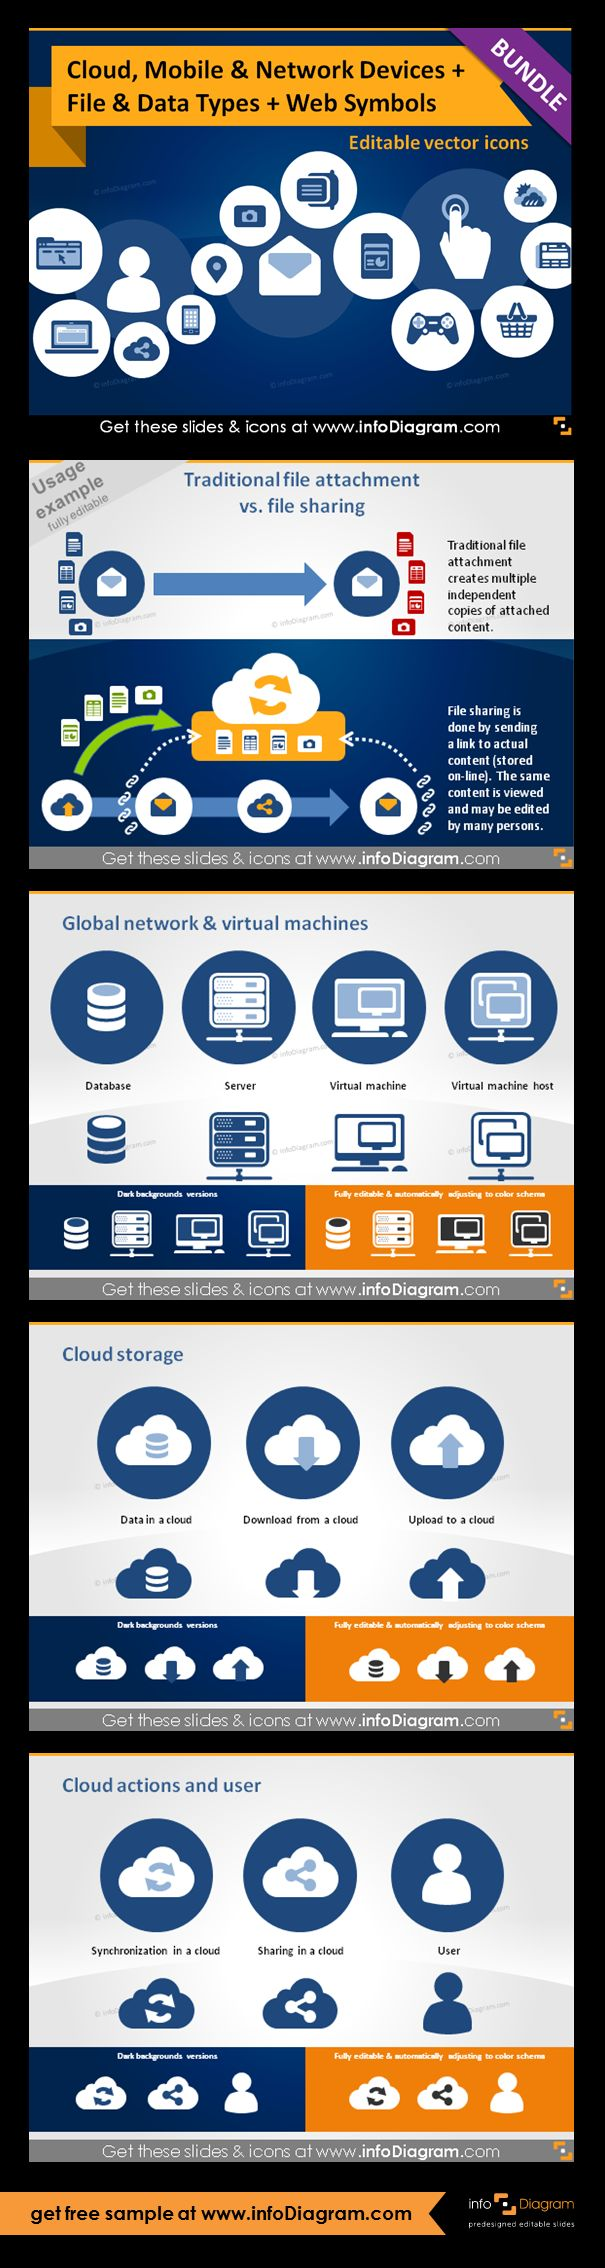 Cloud and Mobile Devices IT symbols. Global network and virtual machines icon pictograms: Database, Server, Virtual Machine, Virtual Machine Host. Cloud storage icon pictograms: Data in a cloud, Download from cloud, Upload from cloud. Cloud actions and user: Cloud synchronization, Cloud Sharing, User icon. Example on Traditional file attachment vs. file sharing.